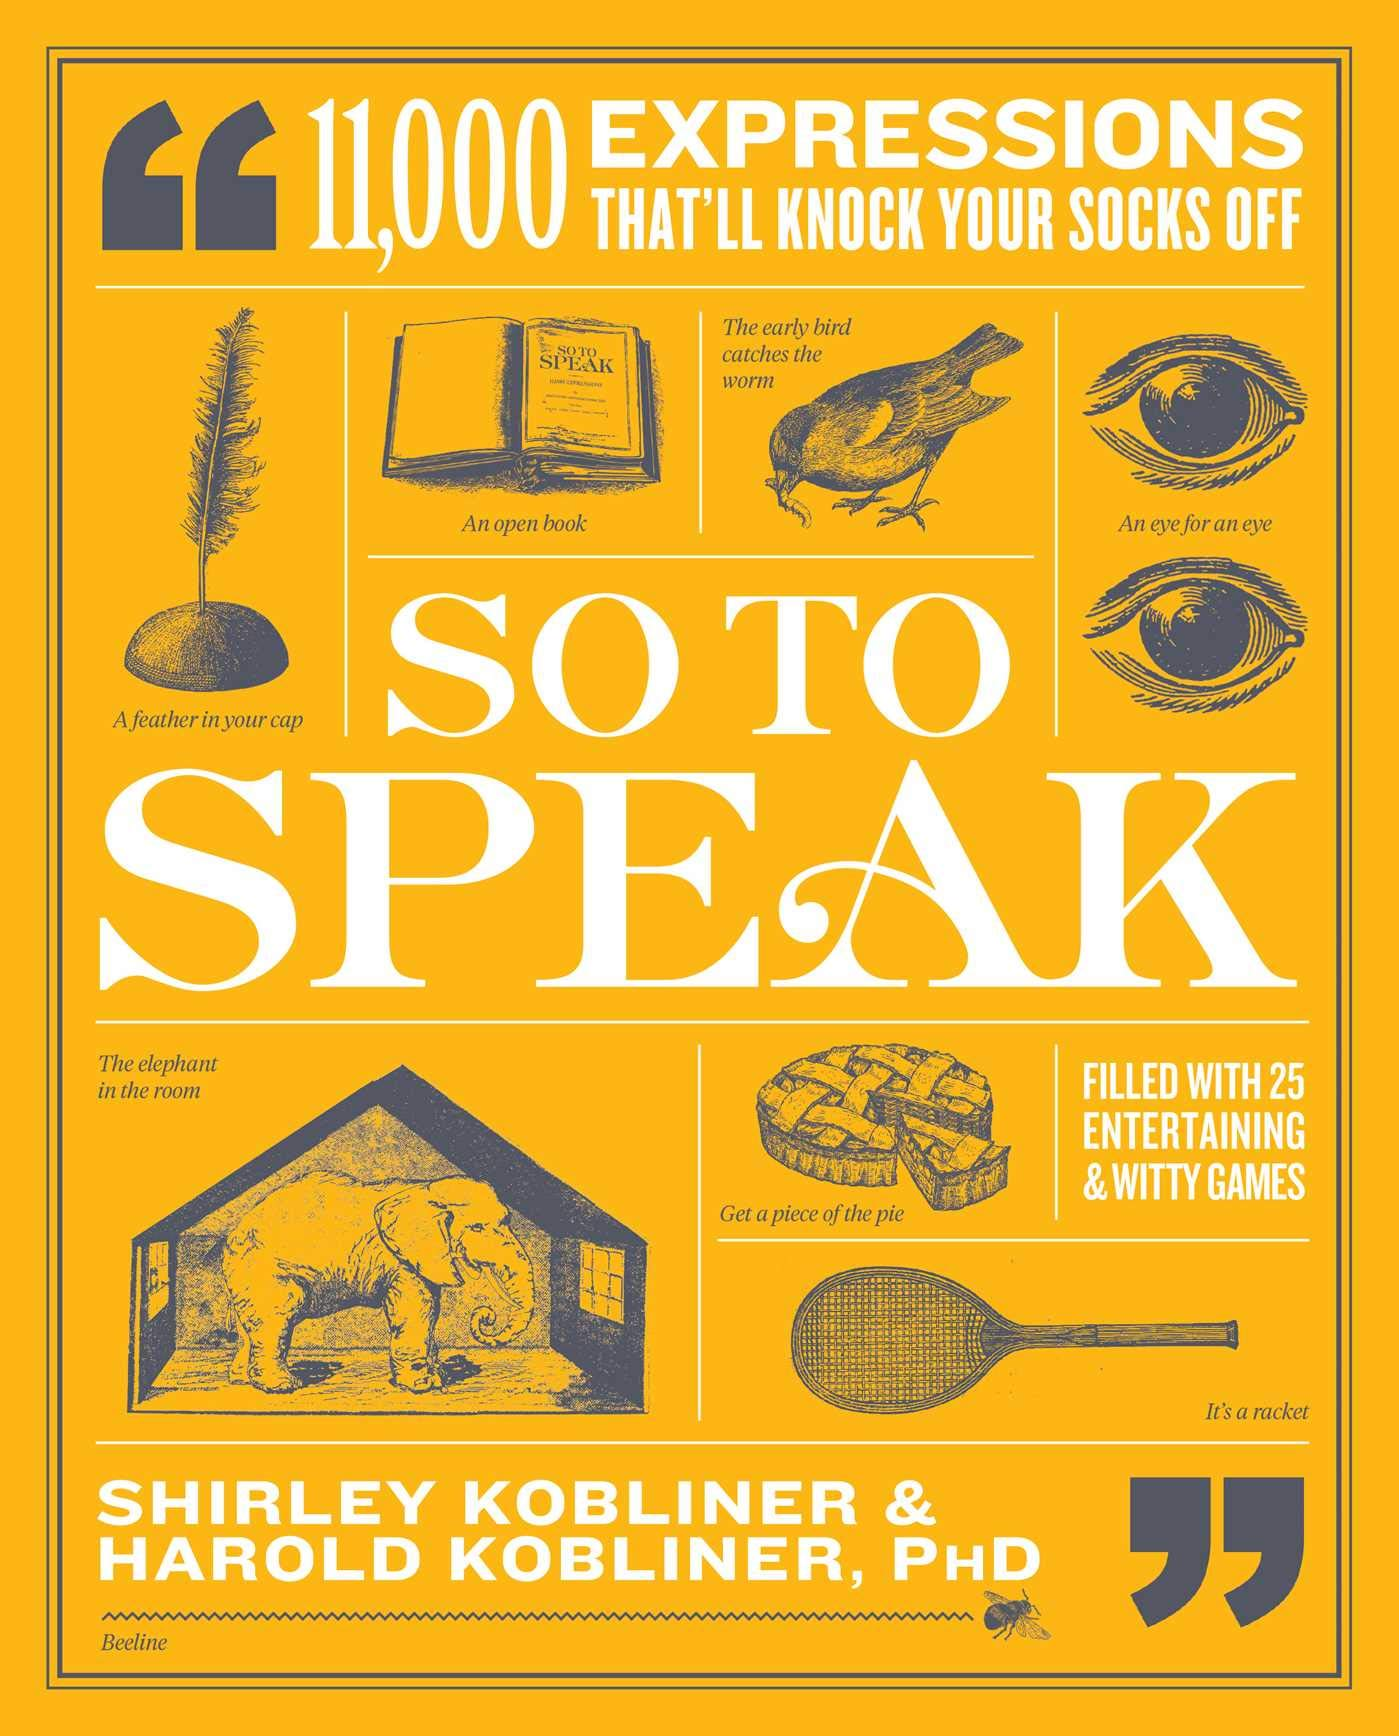 Amazon Com So To Speak 11 000 Expressions That Ll Knock Your Socks Off 9781982163761 Kobliner Shirley Kobliner Phd Harold Books Another word for so to speak. amazon com so to speak 11 000